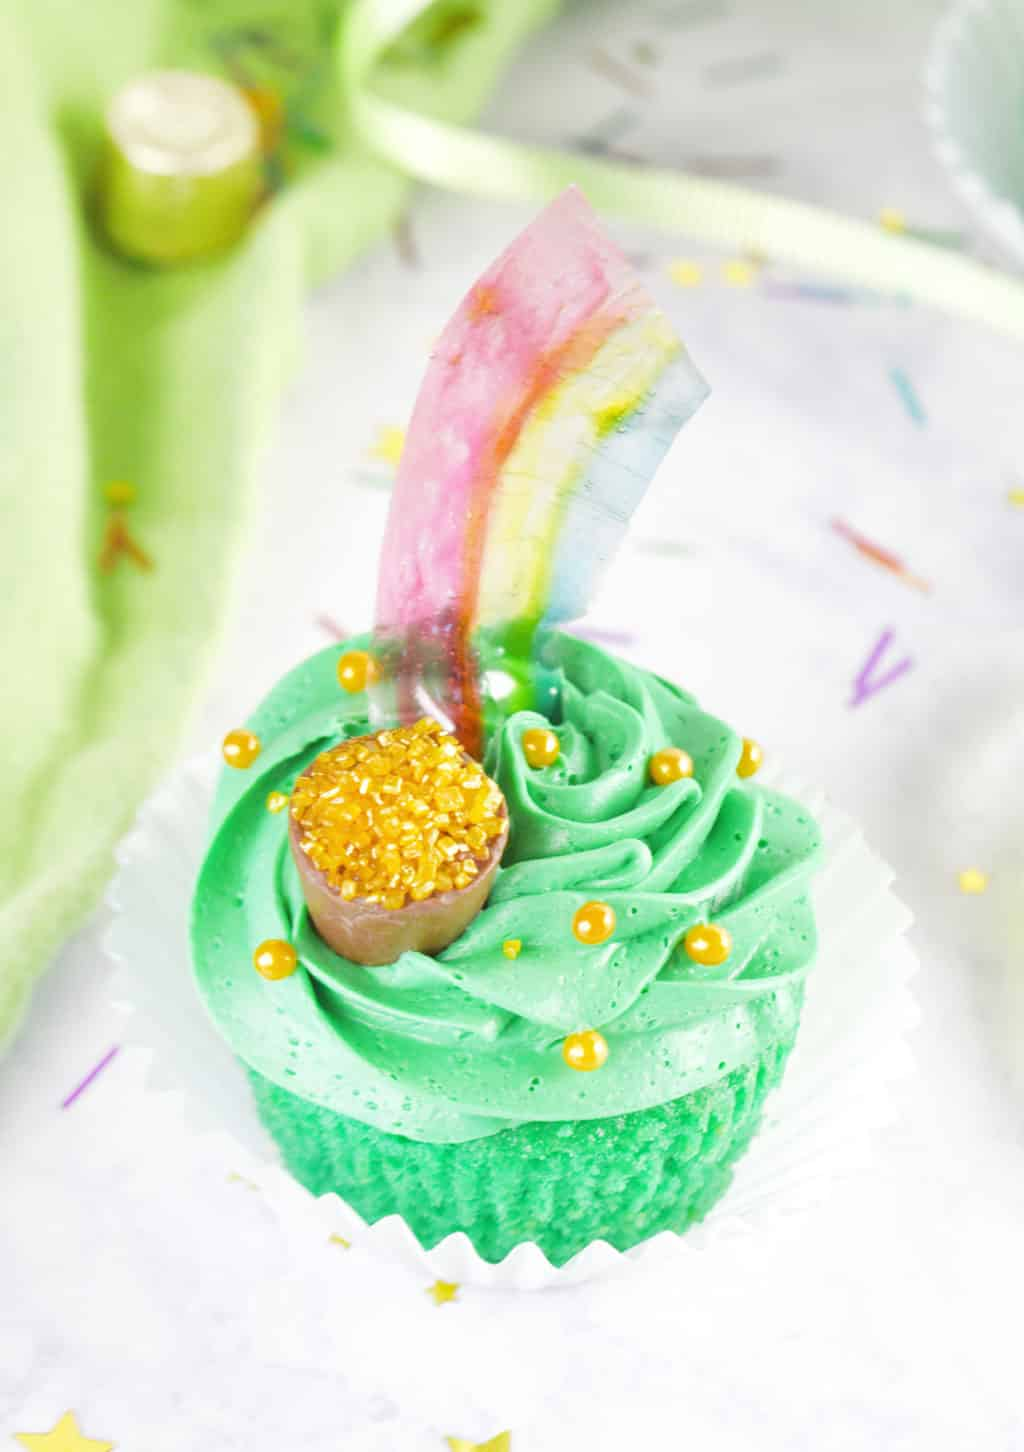 St. Patrick's Day Pot of Gold Cupcakes with Rainbows!! So fun. Just use gelatin to make these easy rainbows!